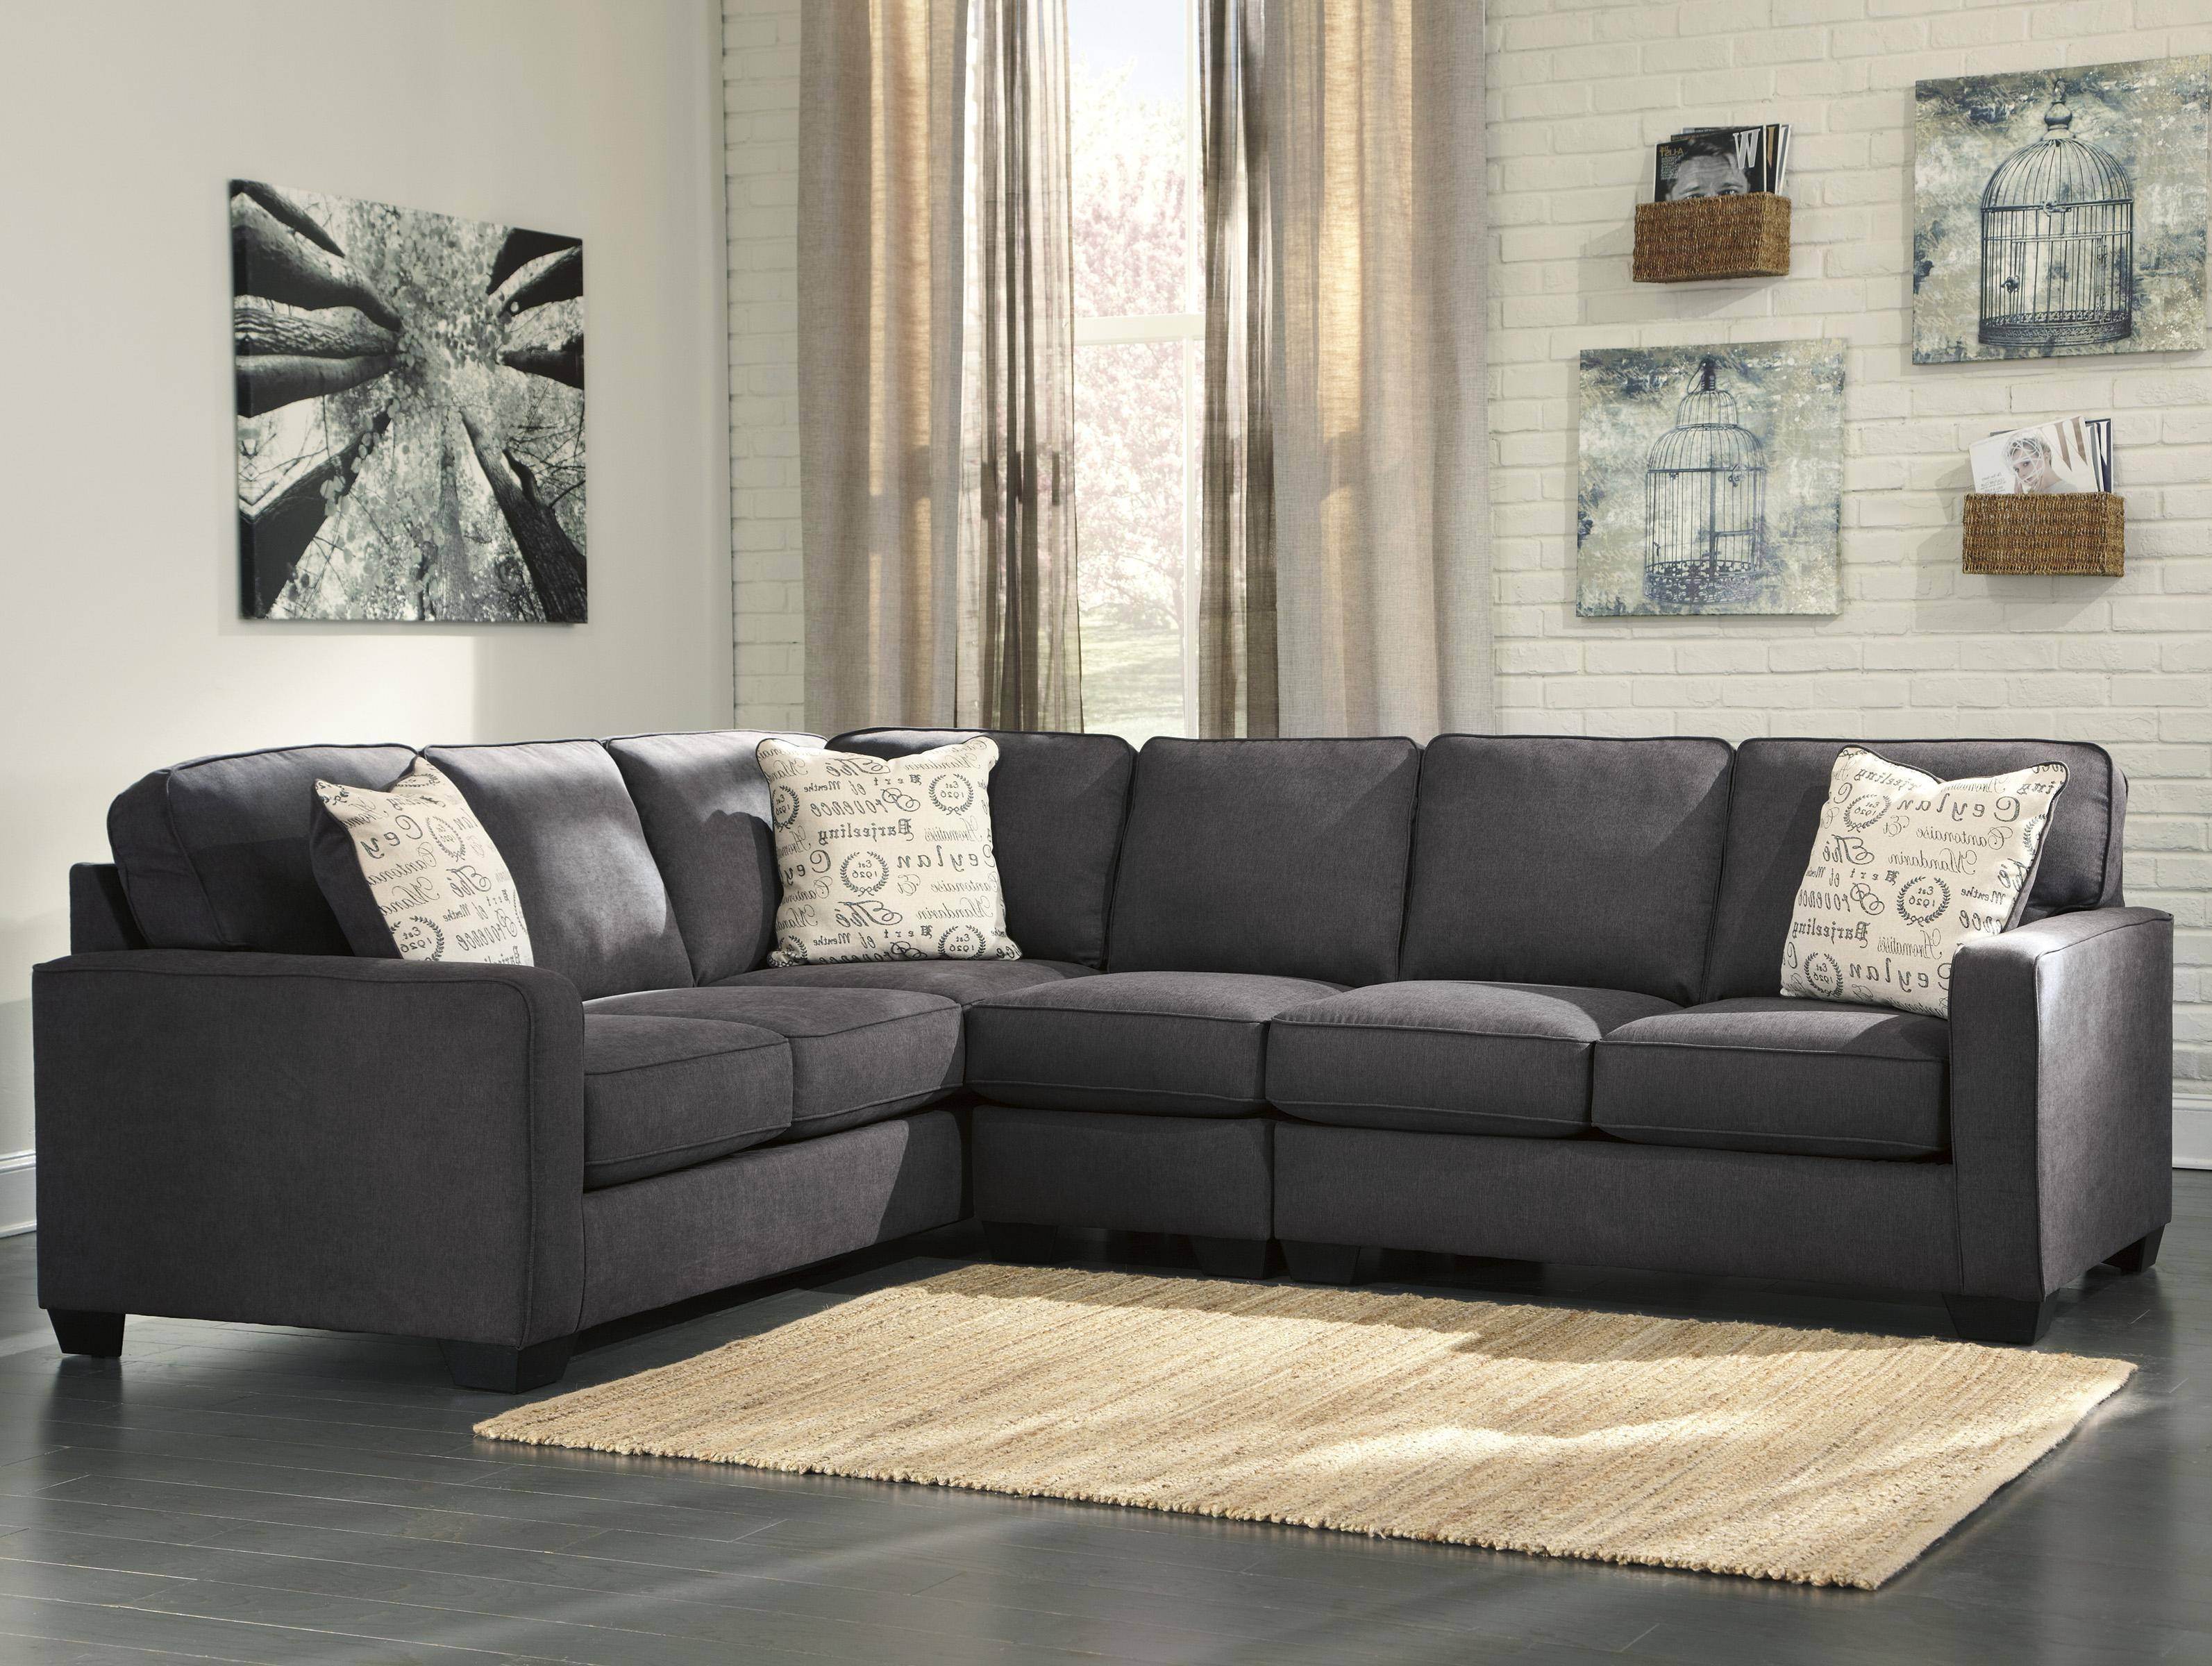 Ashley Signature Design Alenya - Charcoal 3-Piece Sectional With with regard to Signature Design Sectional Sofas (Image 1 of 15)